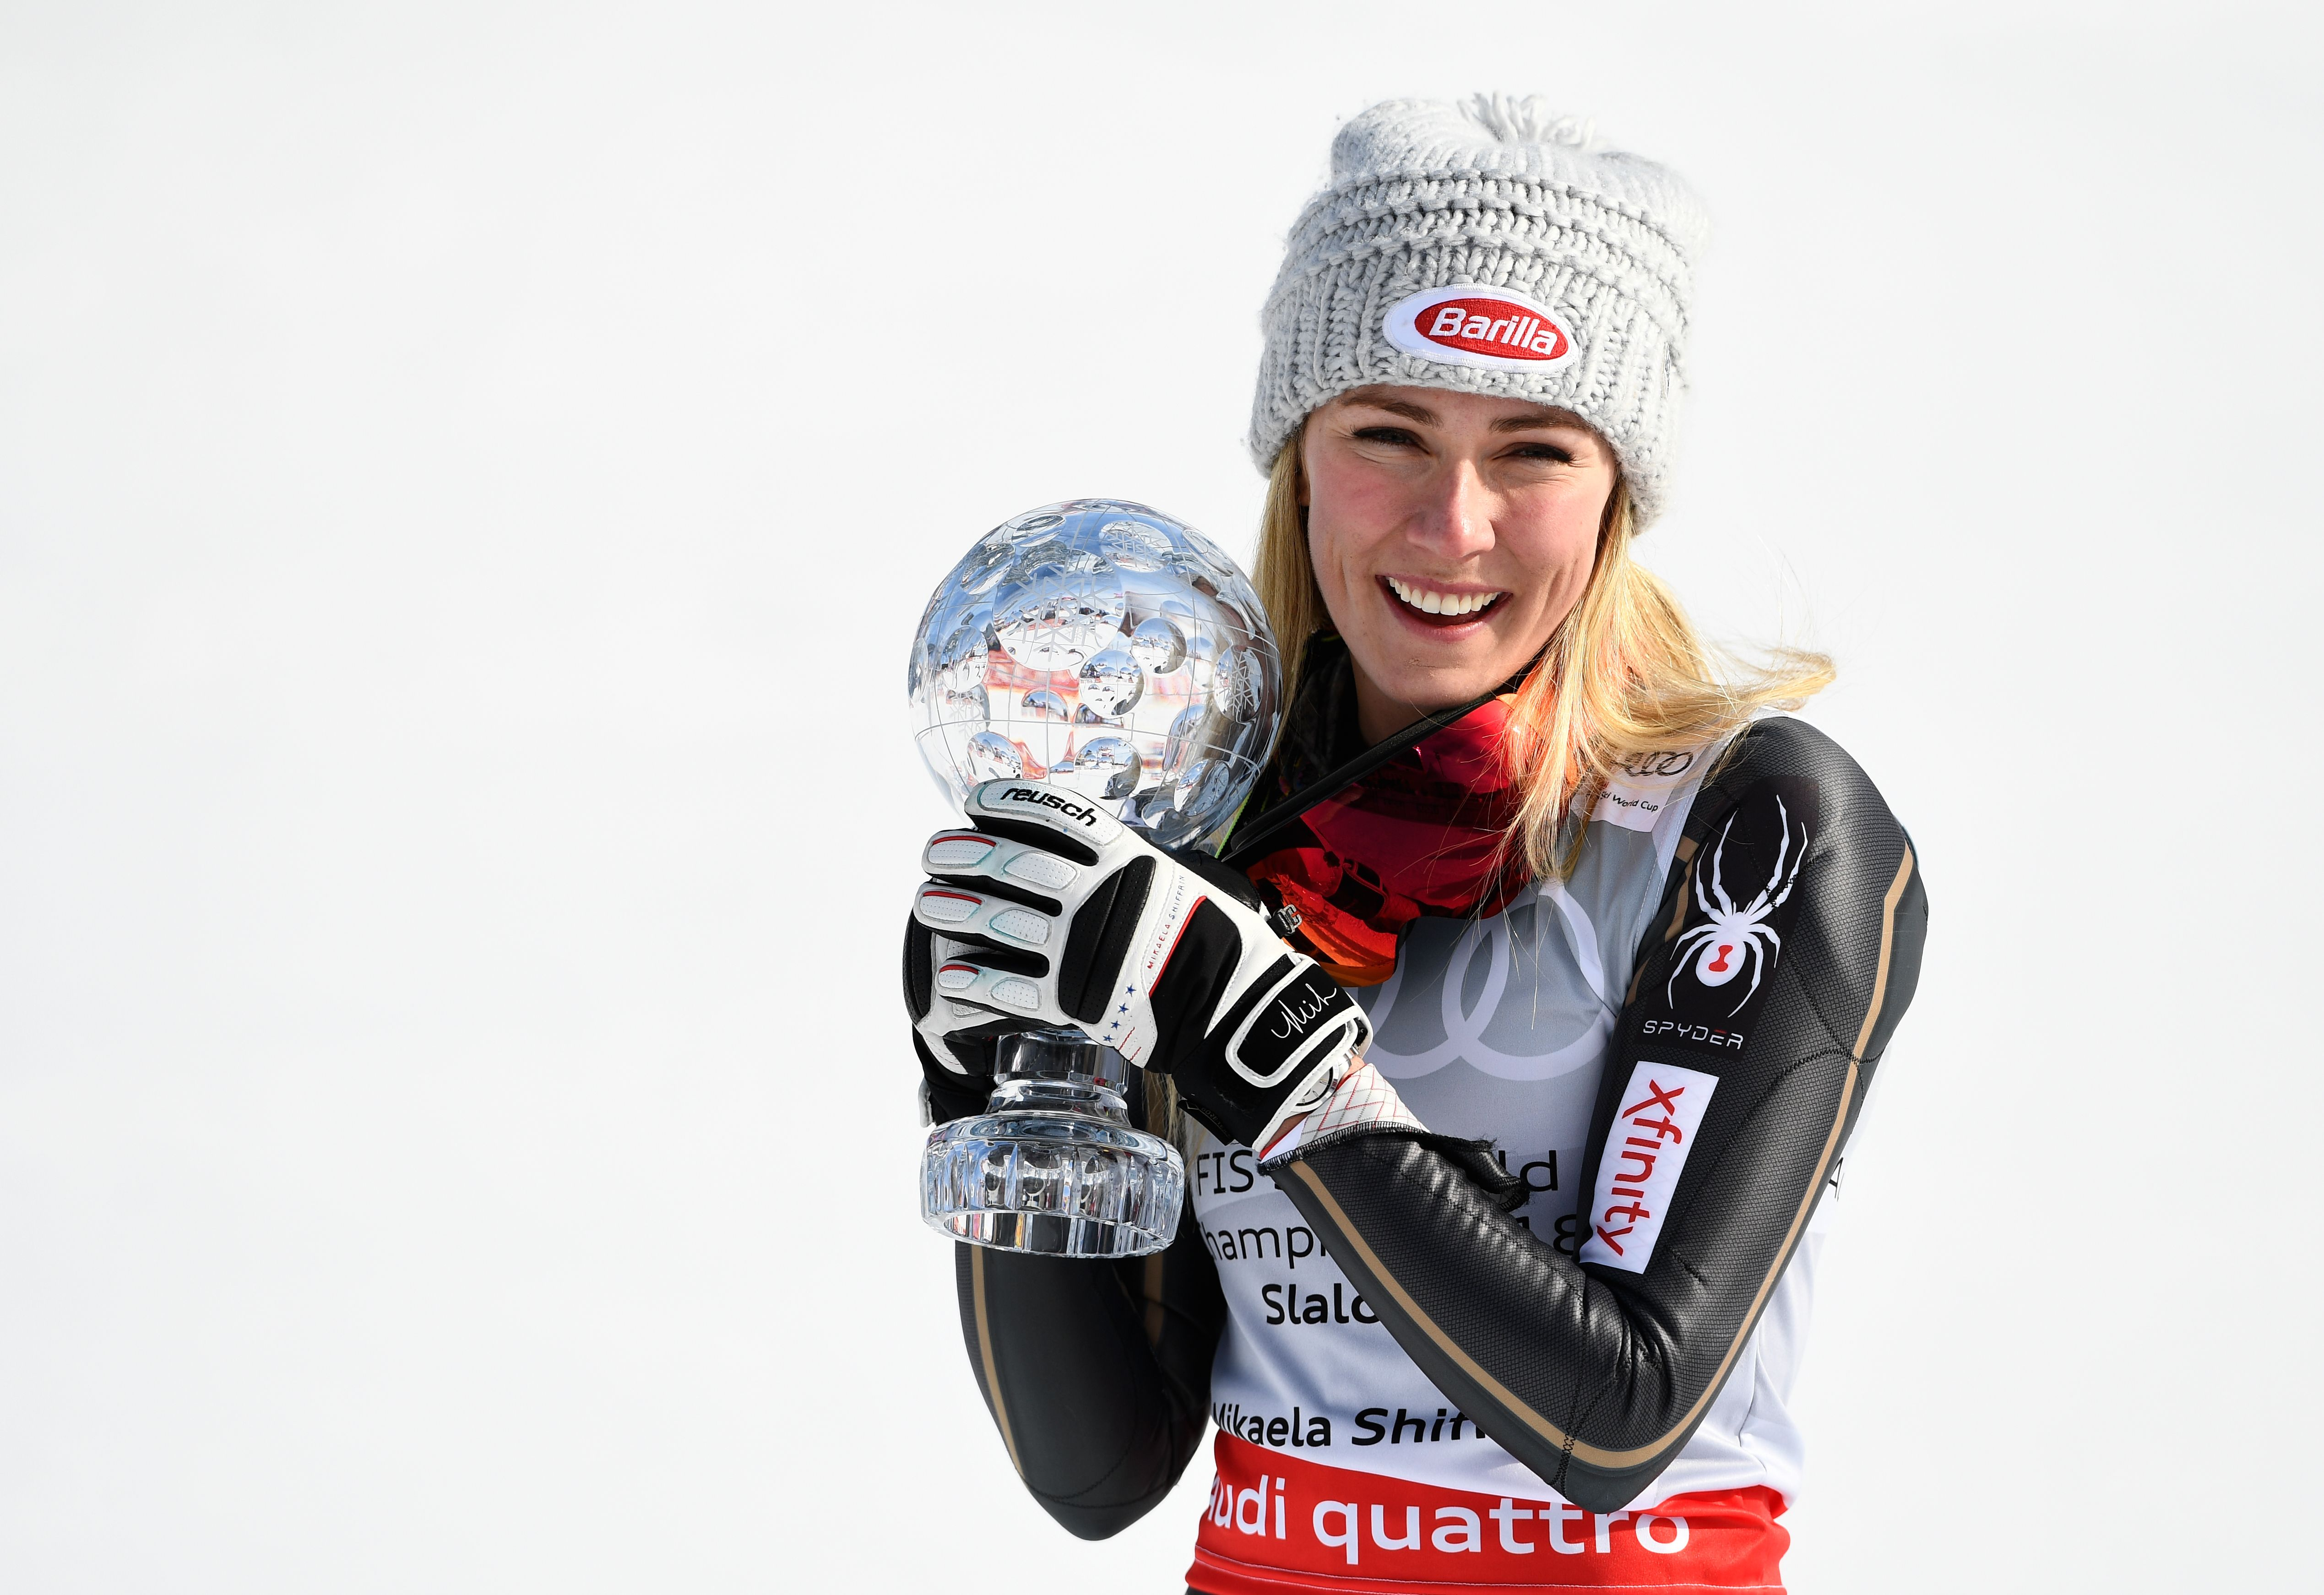 Mikaela Shiffrin 2.0: Featured in Ski Racing